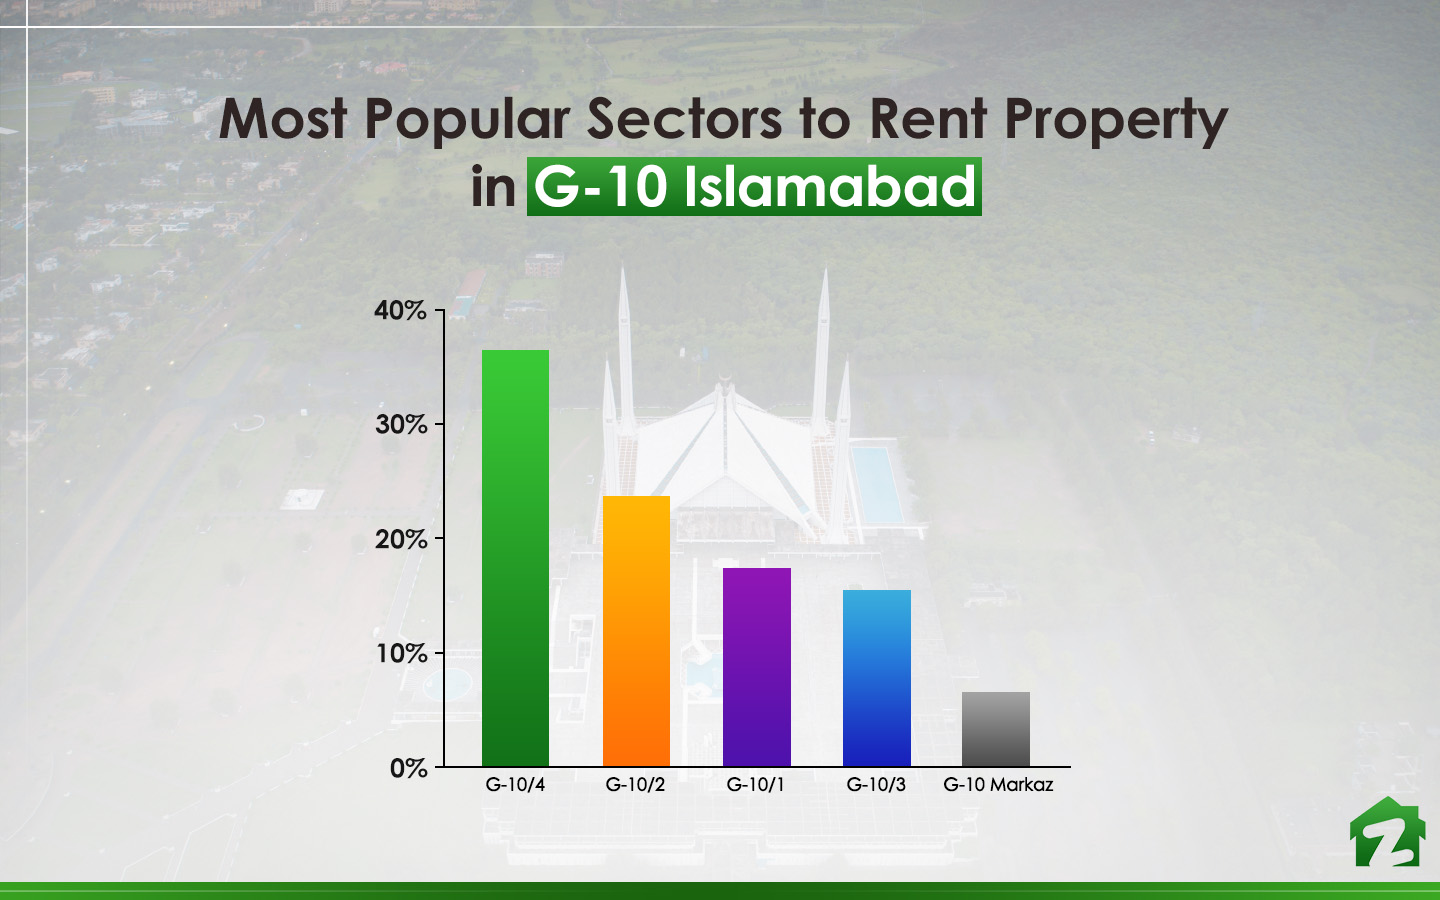 Most Popular Sectors to rent Property in G-10 Islamabad